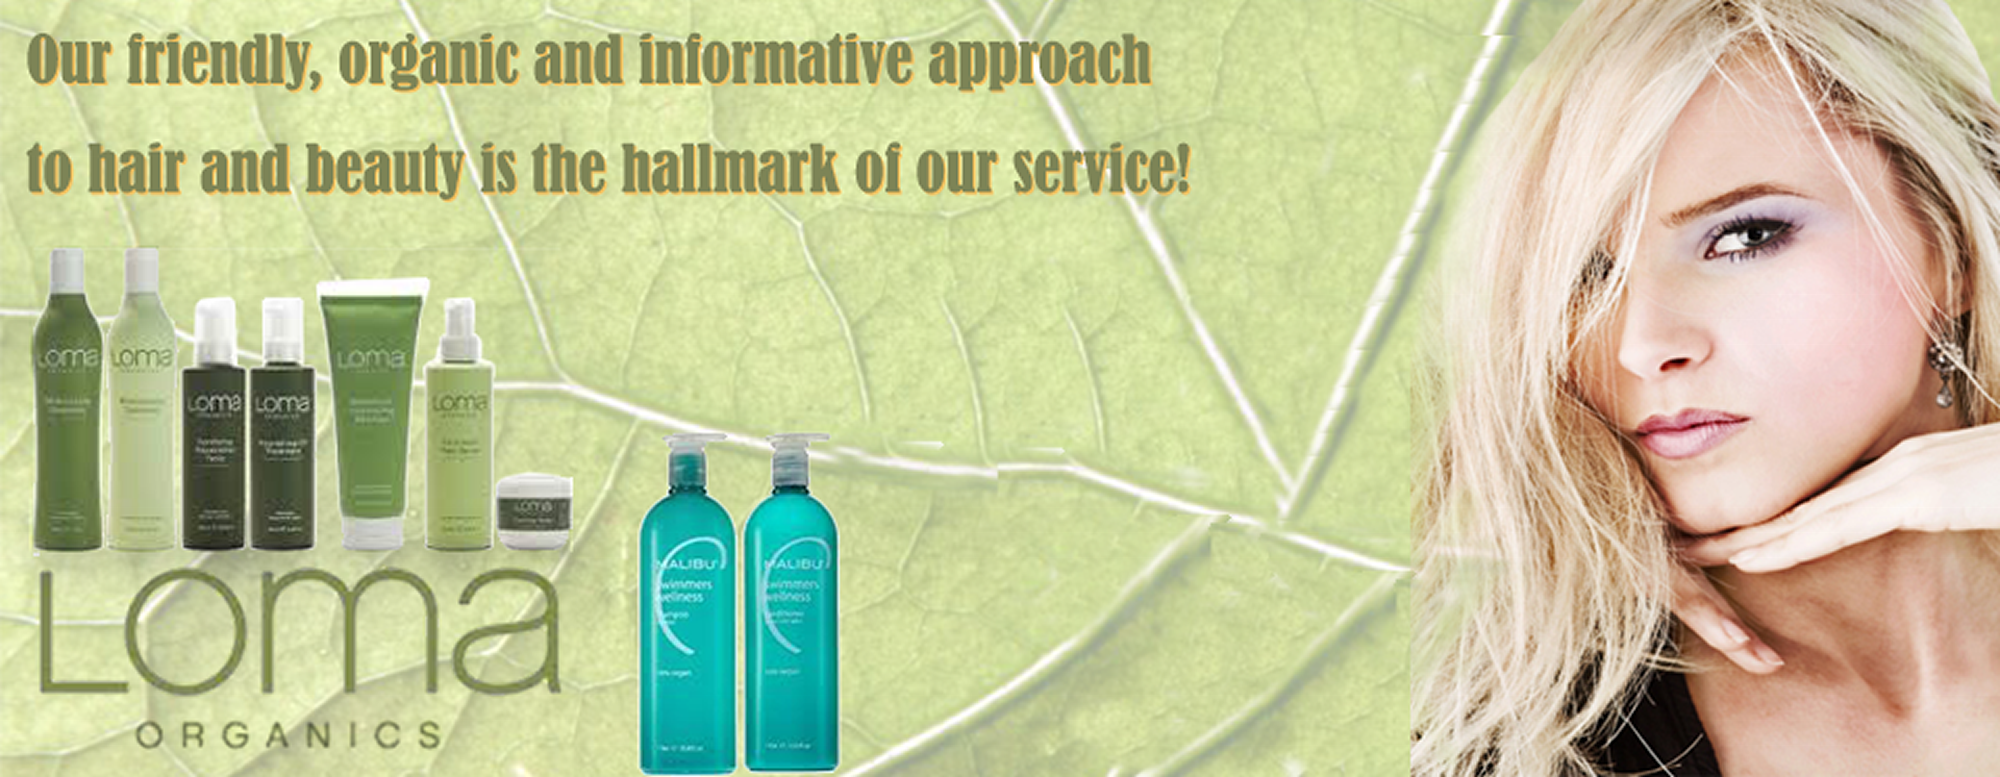 Euphoria Organic Hair Salon Products